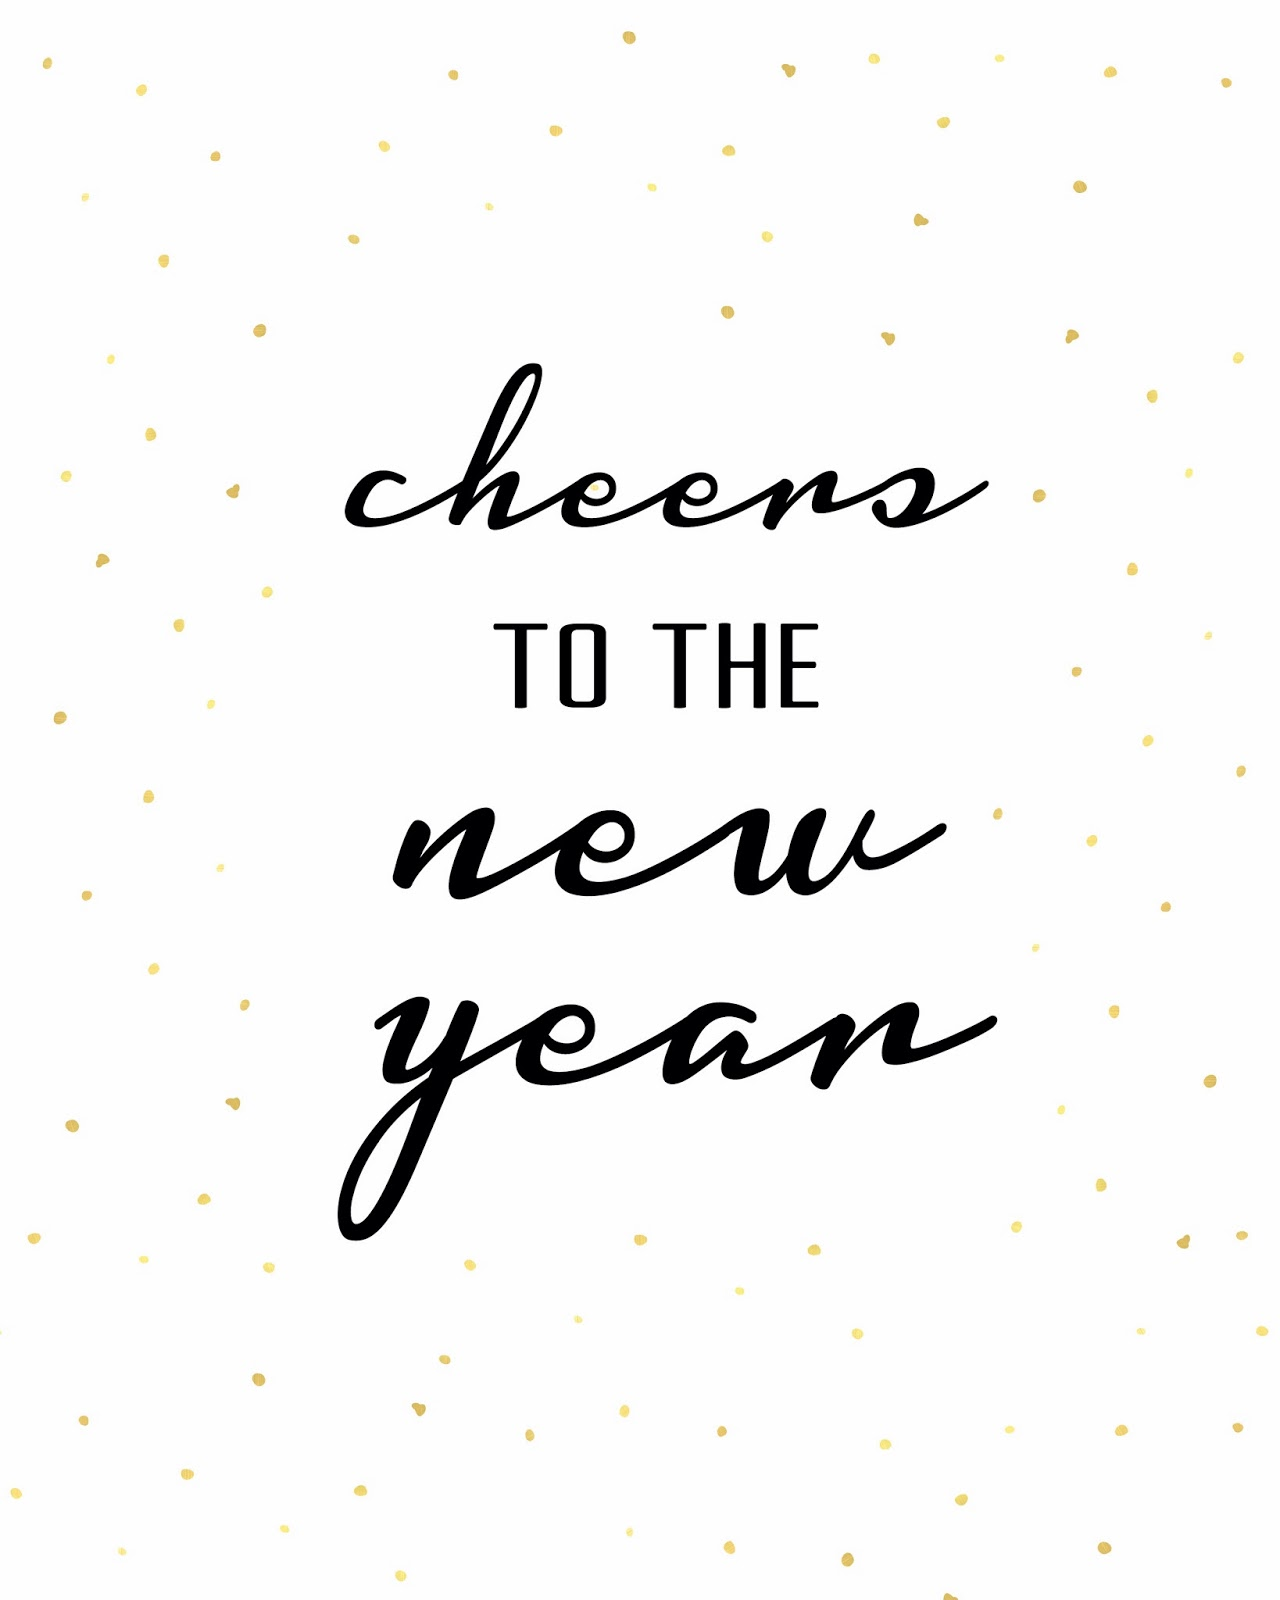 Breakfast at the Zemke\'s: Cheers to the New Year- Free Download